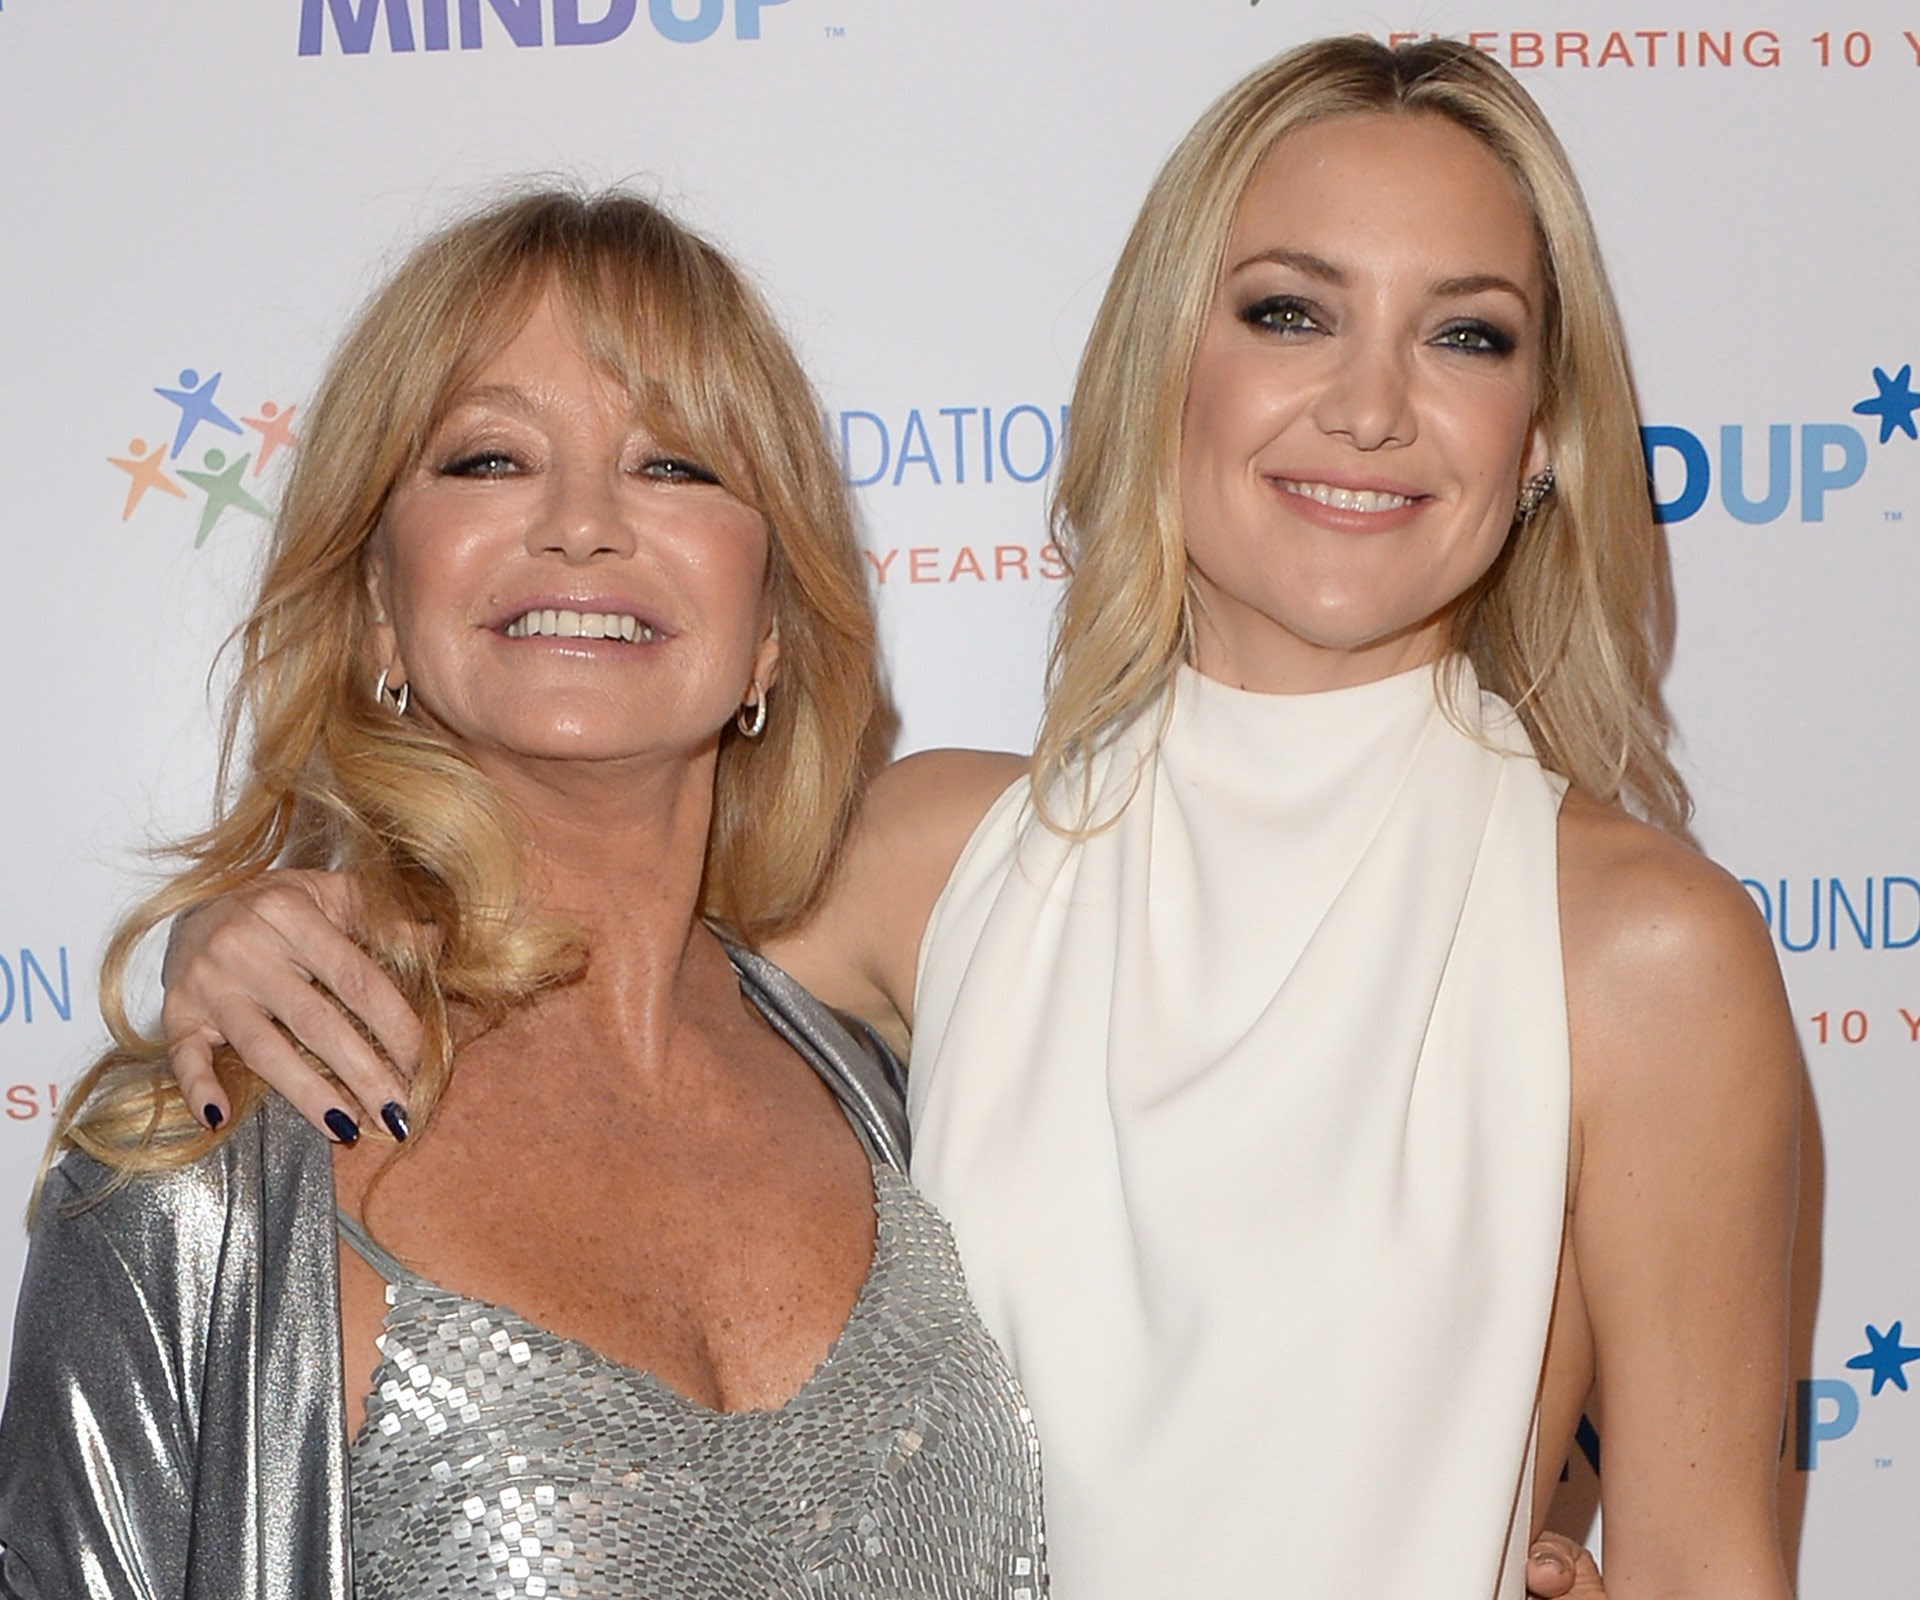 Kate Hudson and mum Goldie Hawn could be sisters!